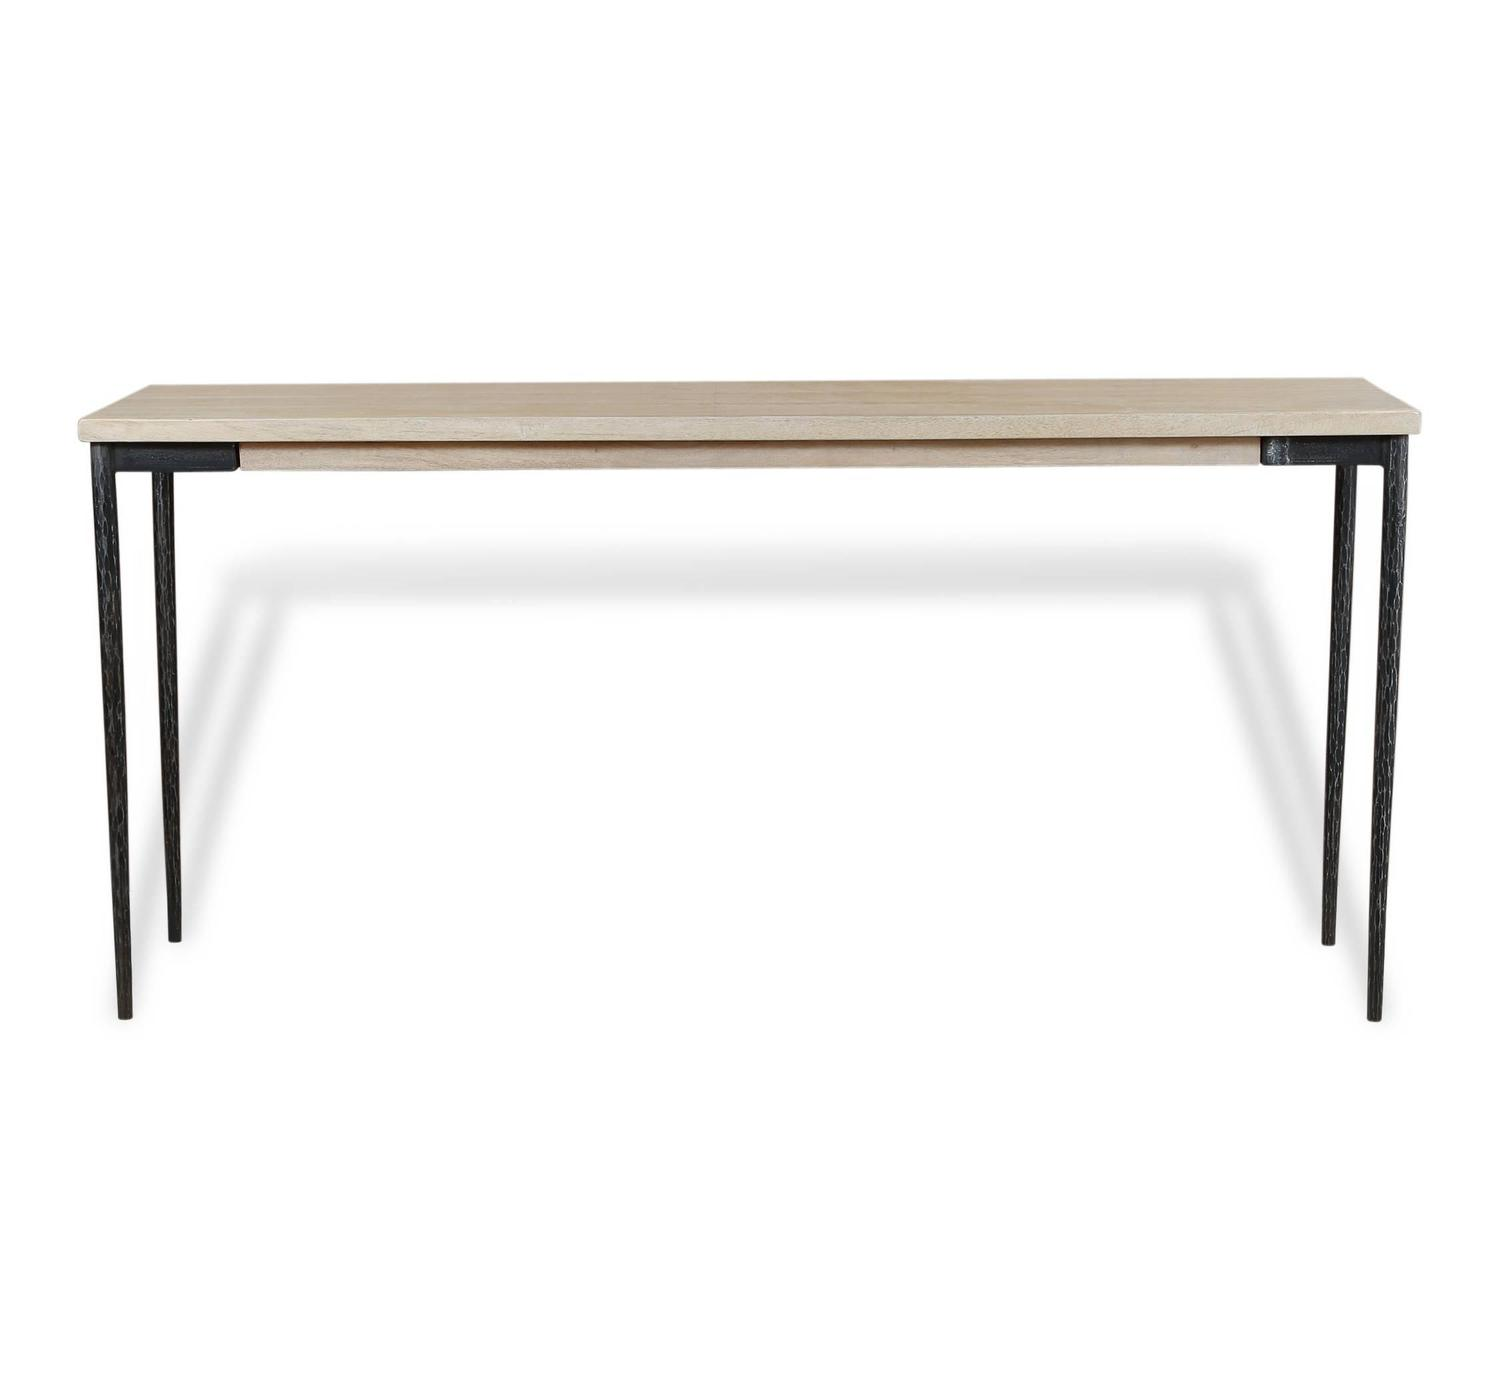 Wood and metal console table for sale at 1stdibs for Wood and metal console table